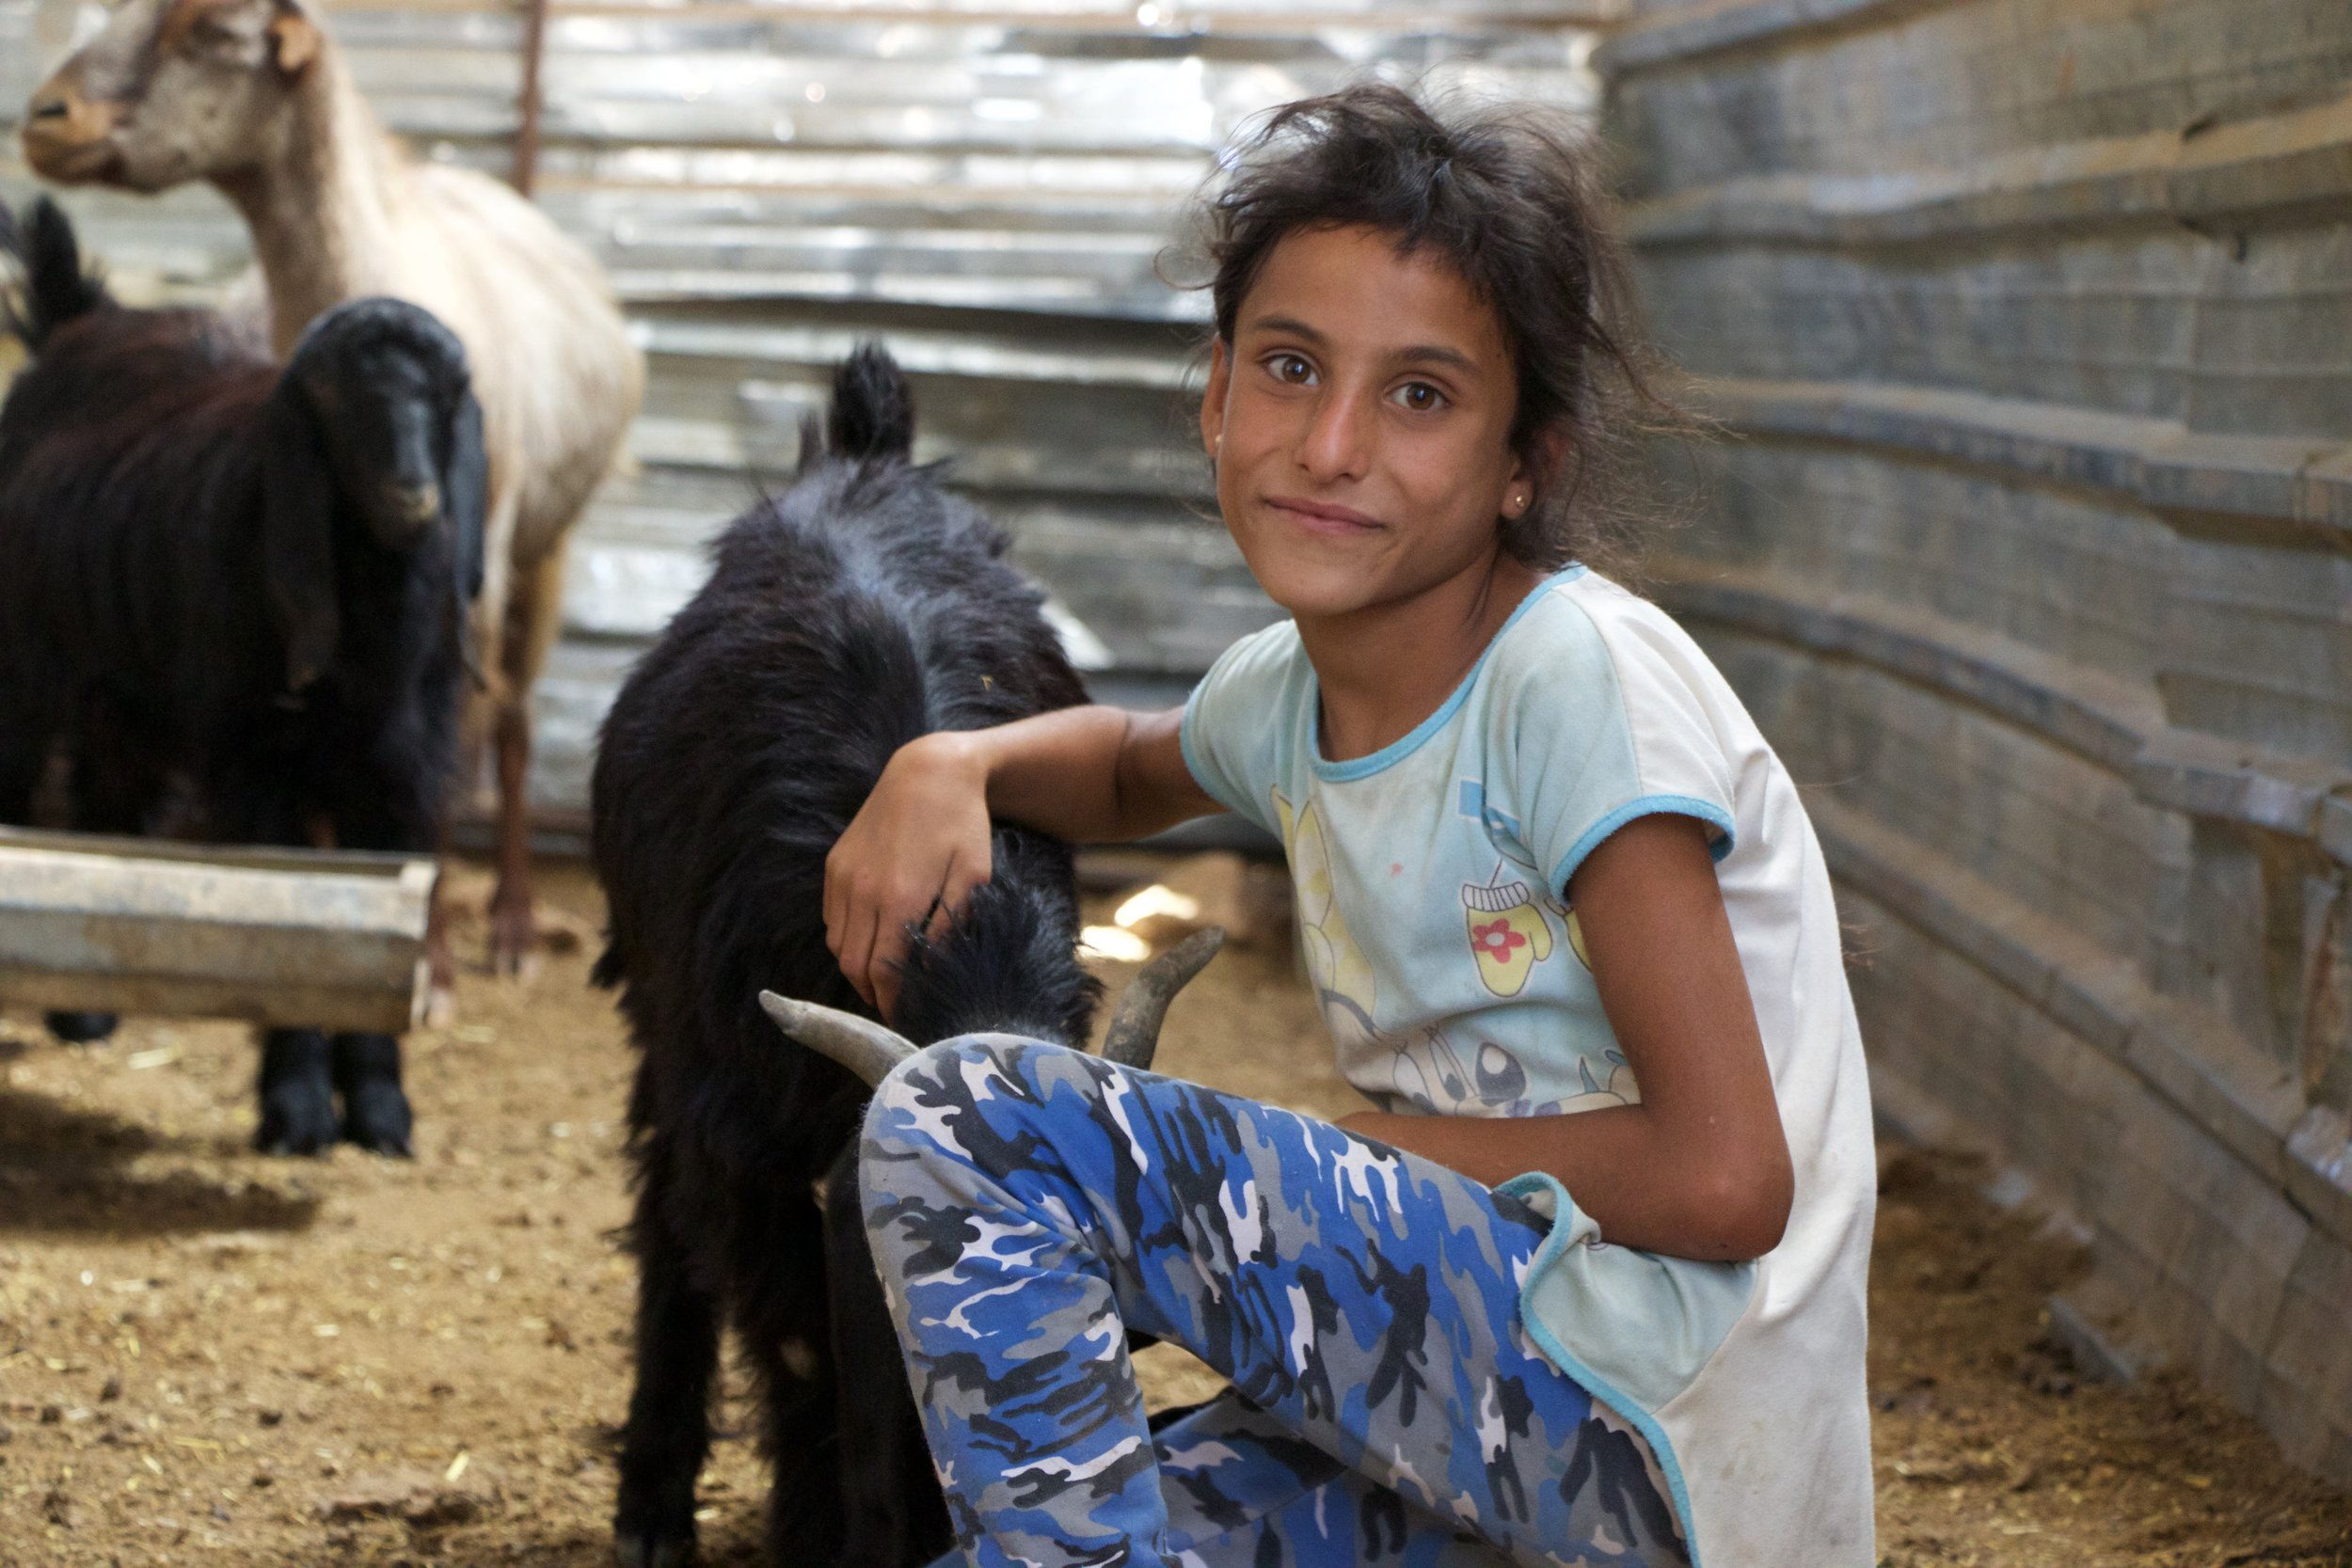 Ranine, 7, Hiba's younger sister, with her favorite goat.